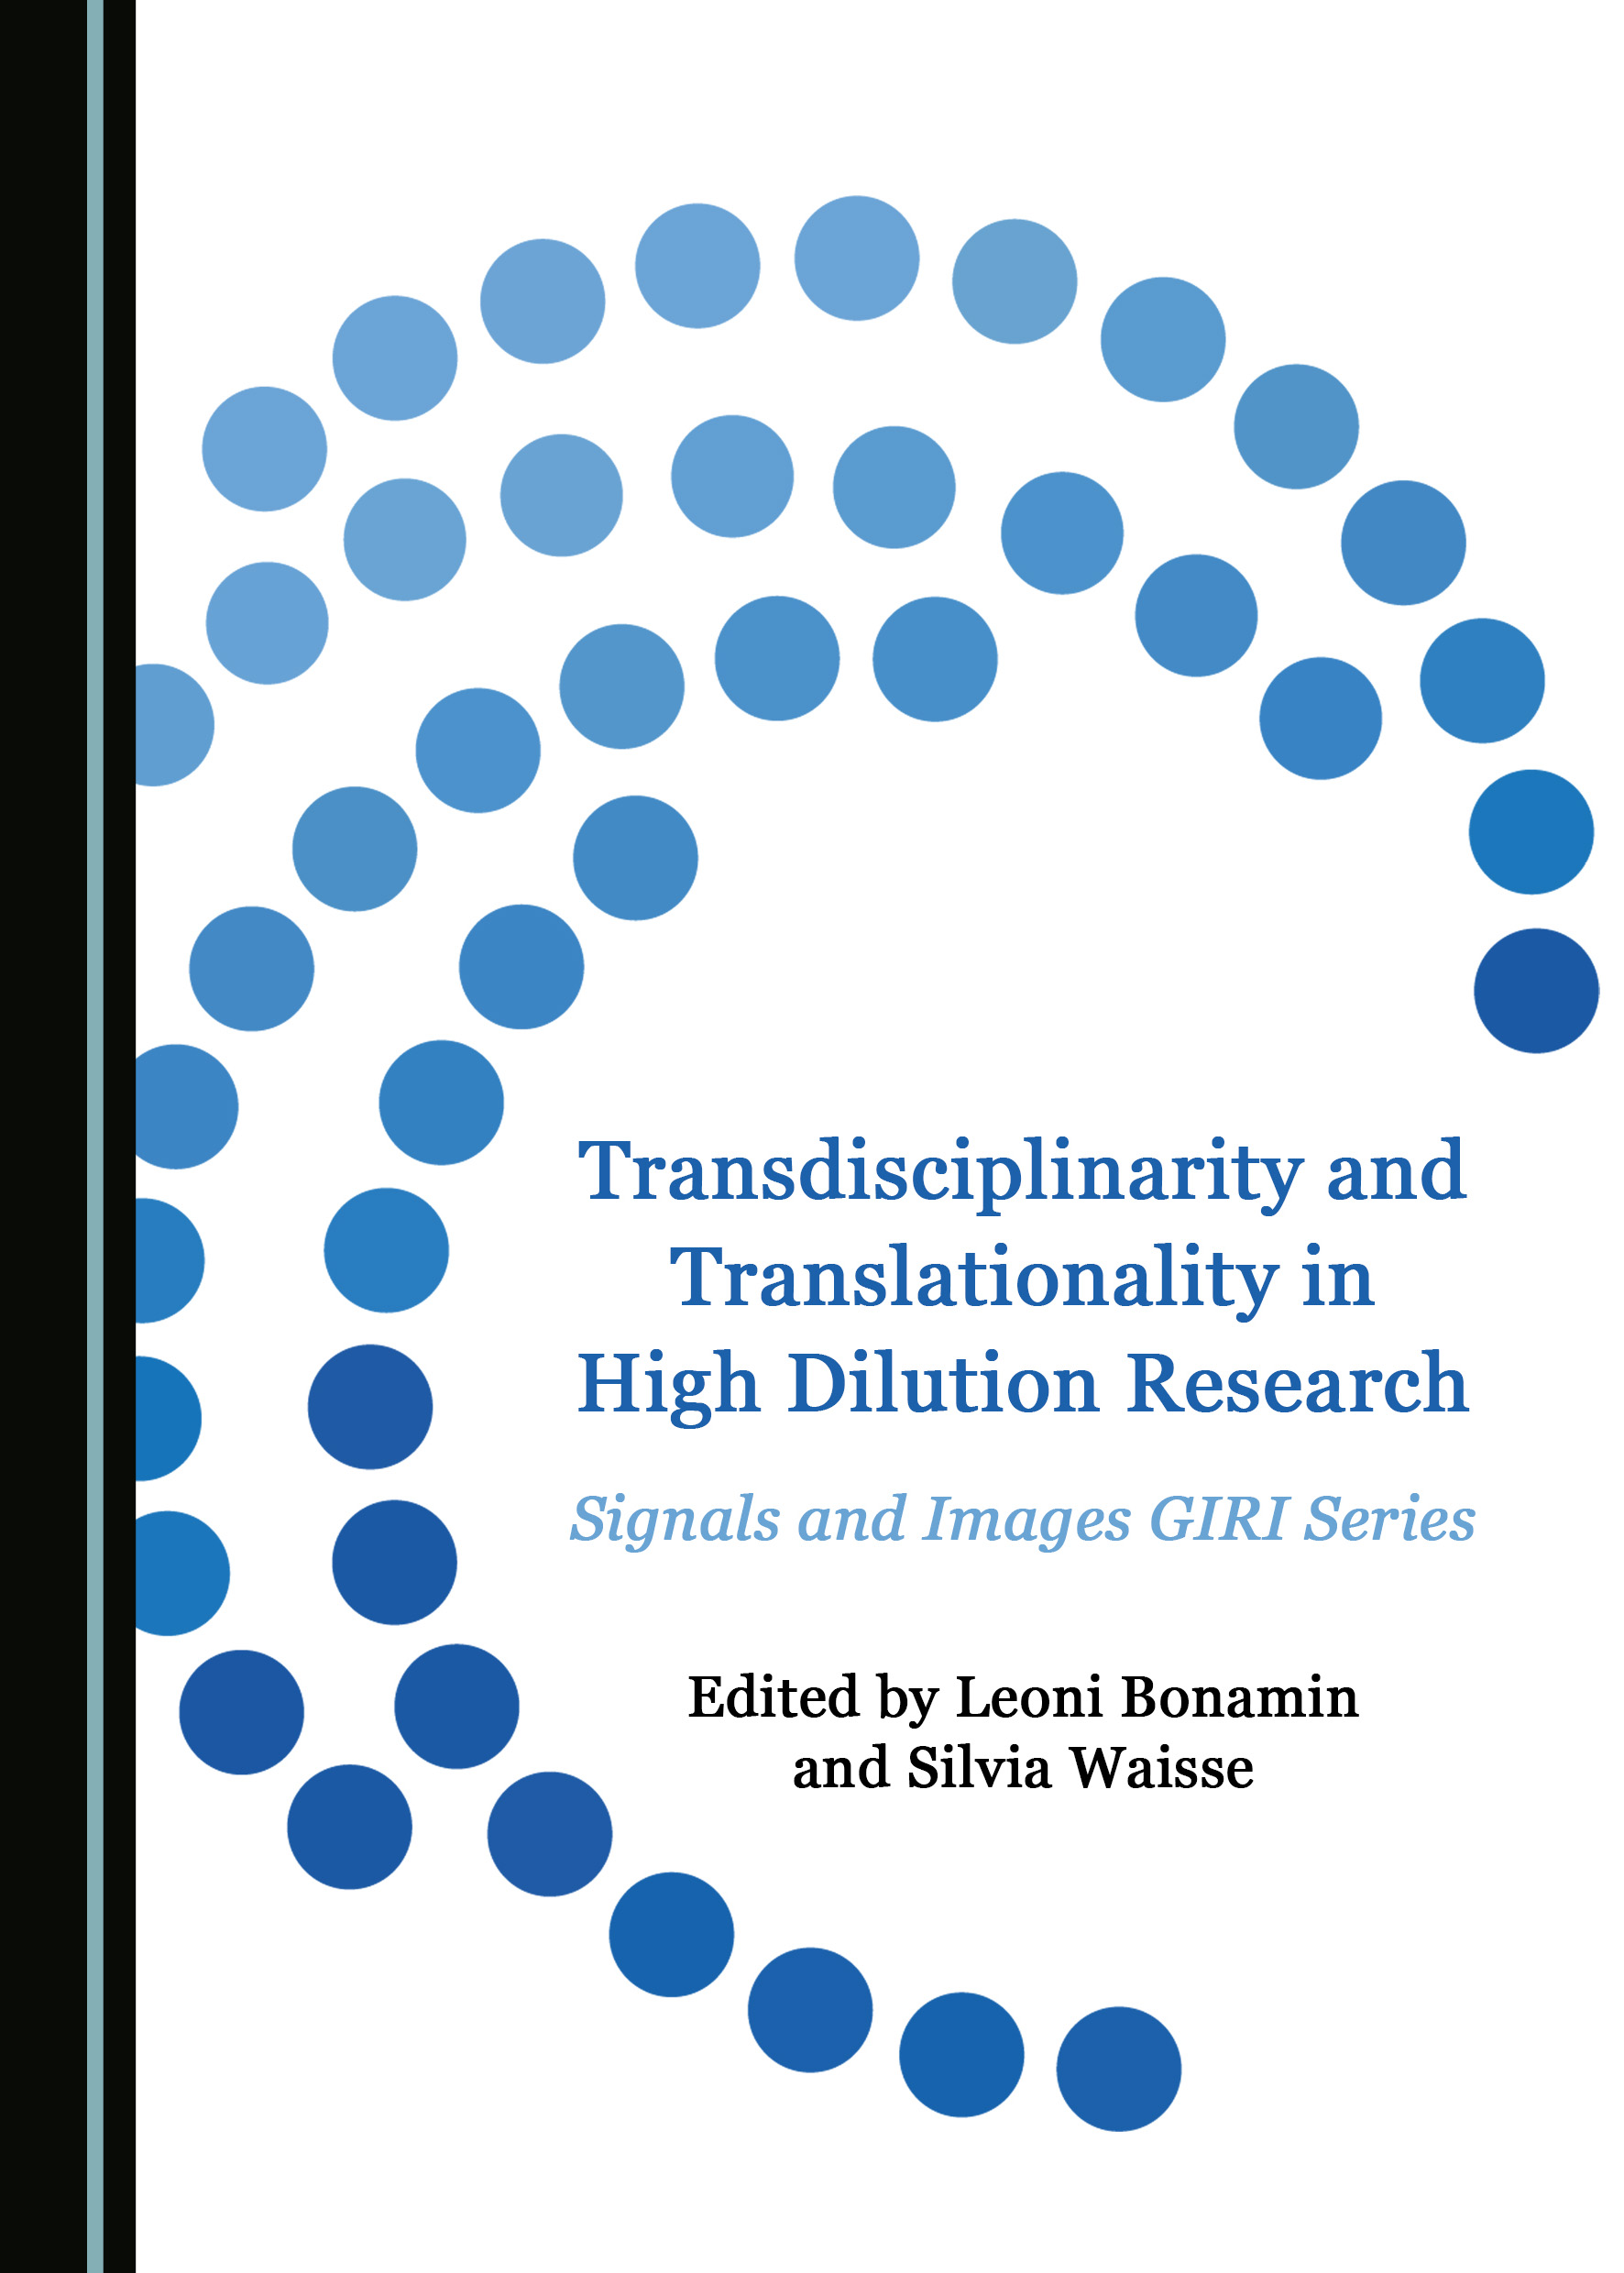 Transdisciplinarity and Translationality in High Dilution Research: Signals and Images GIRI Series